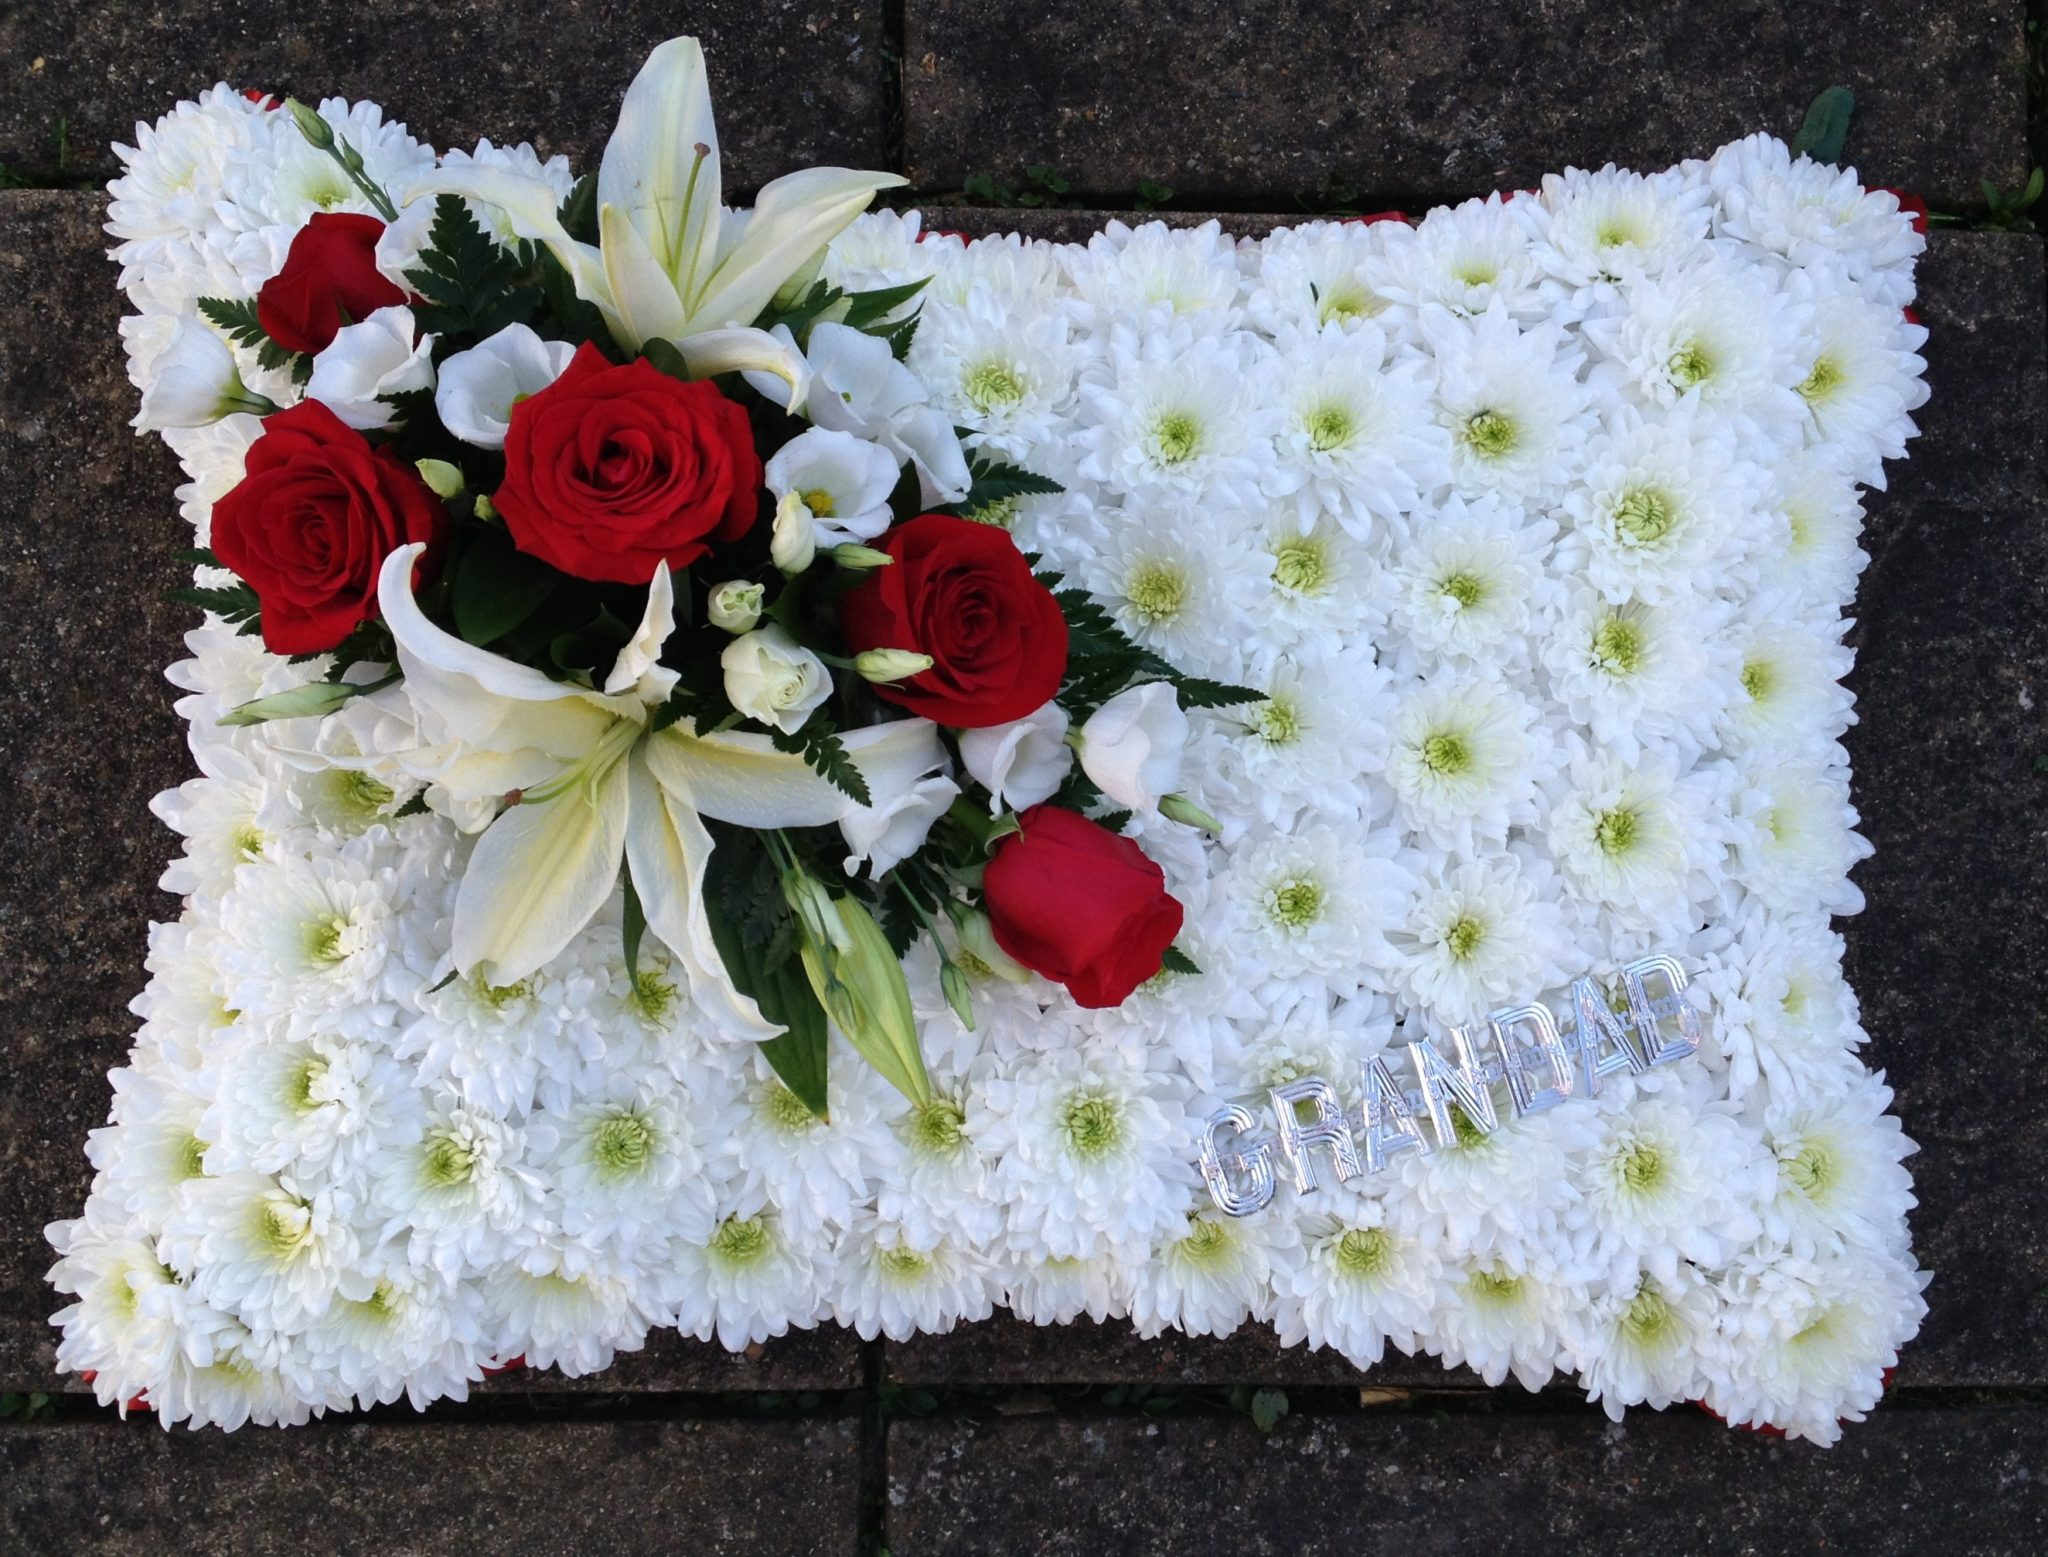 Funeral flowers essex elishasfloraldesign funeral flowers izmirmasajfo